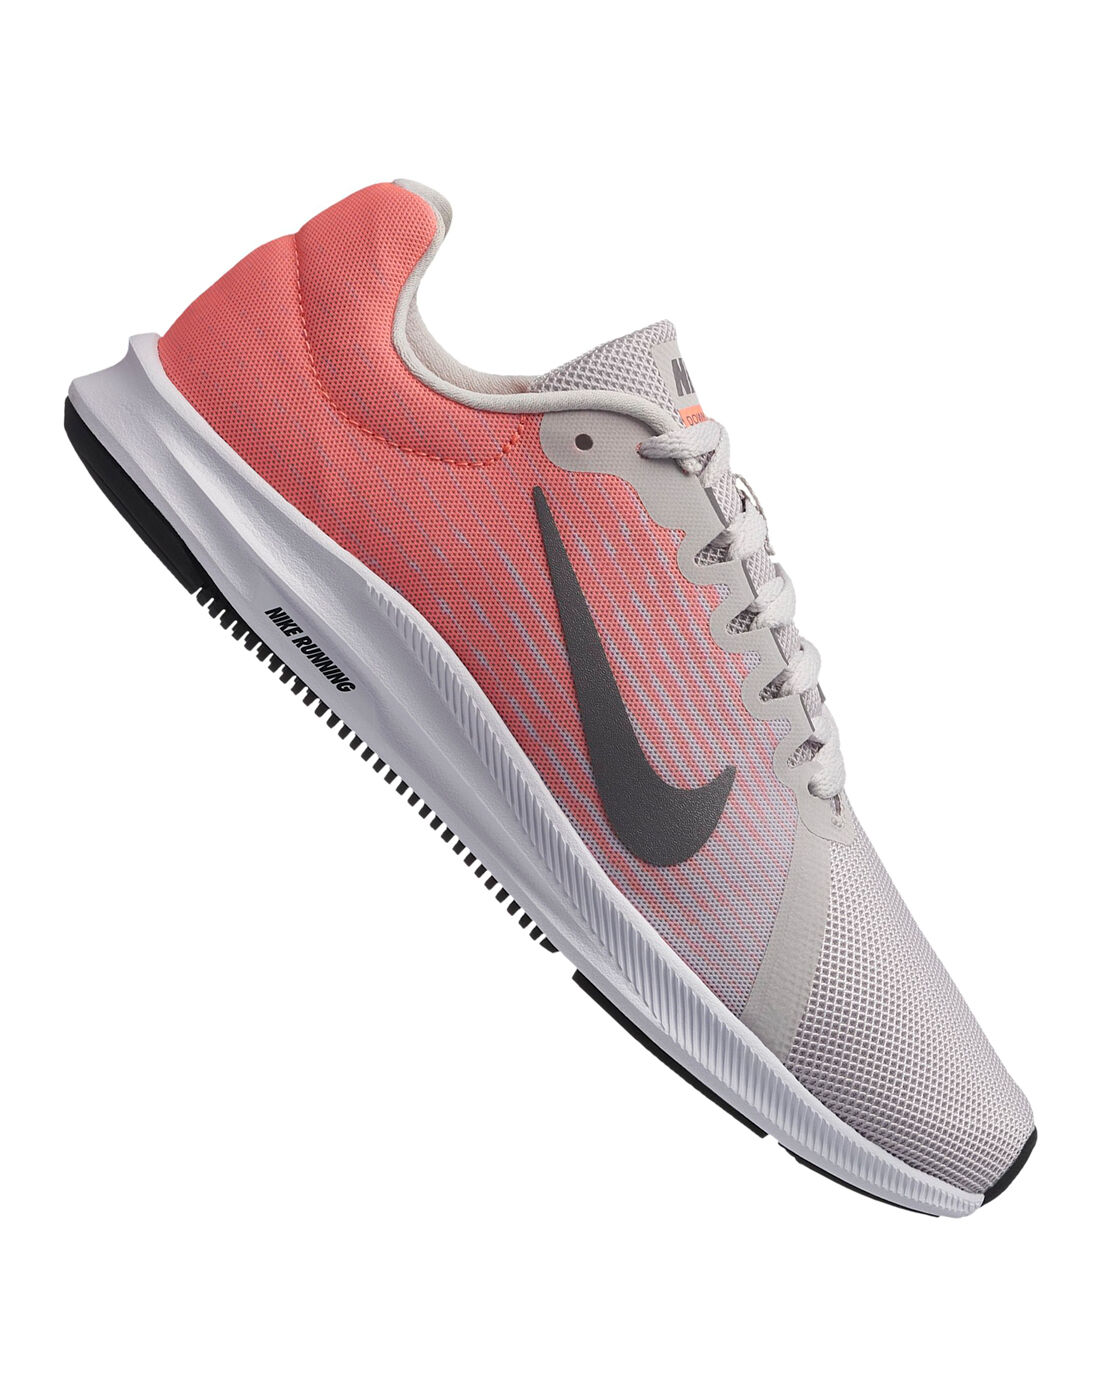 Nike Womens Downshifter 8 | Life Style